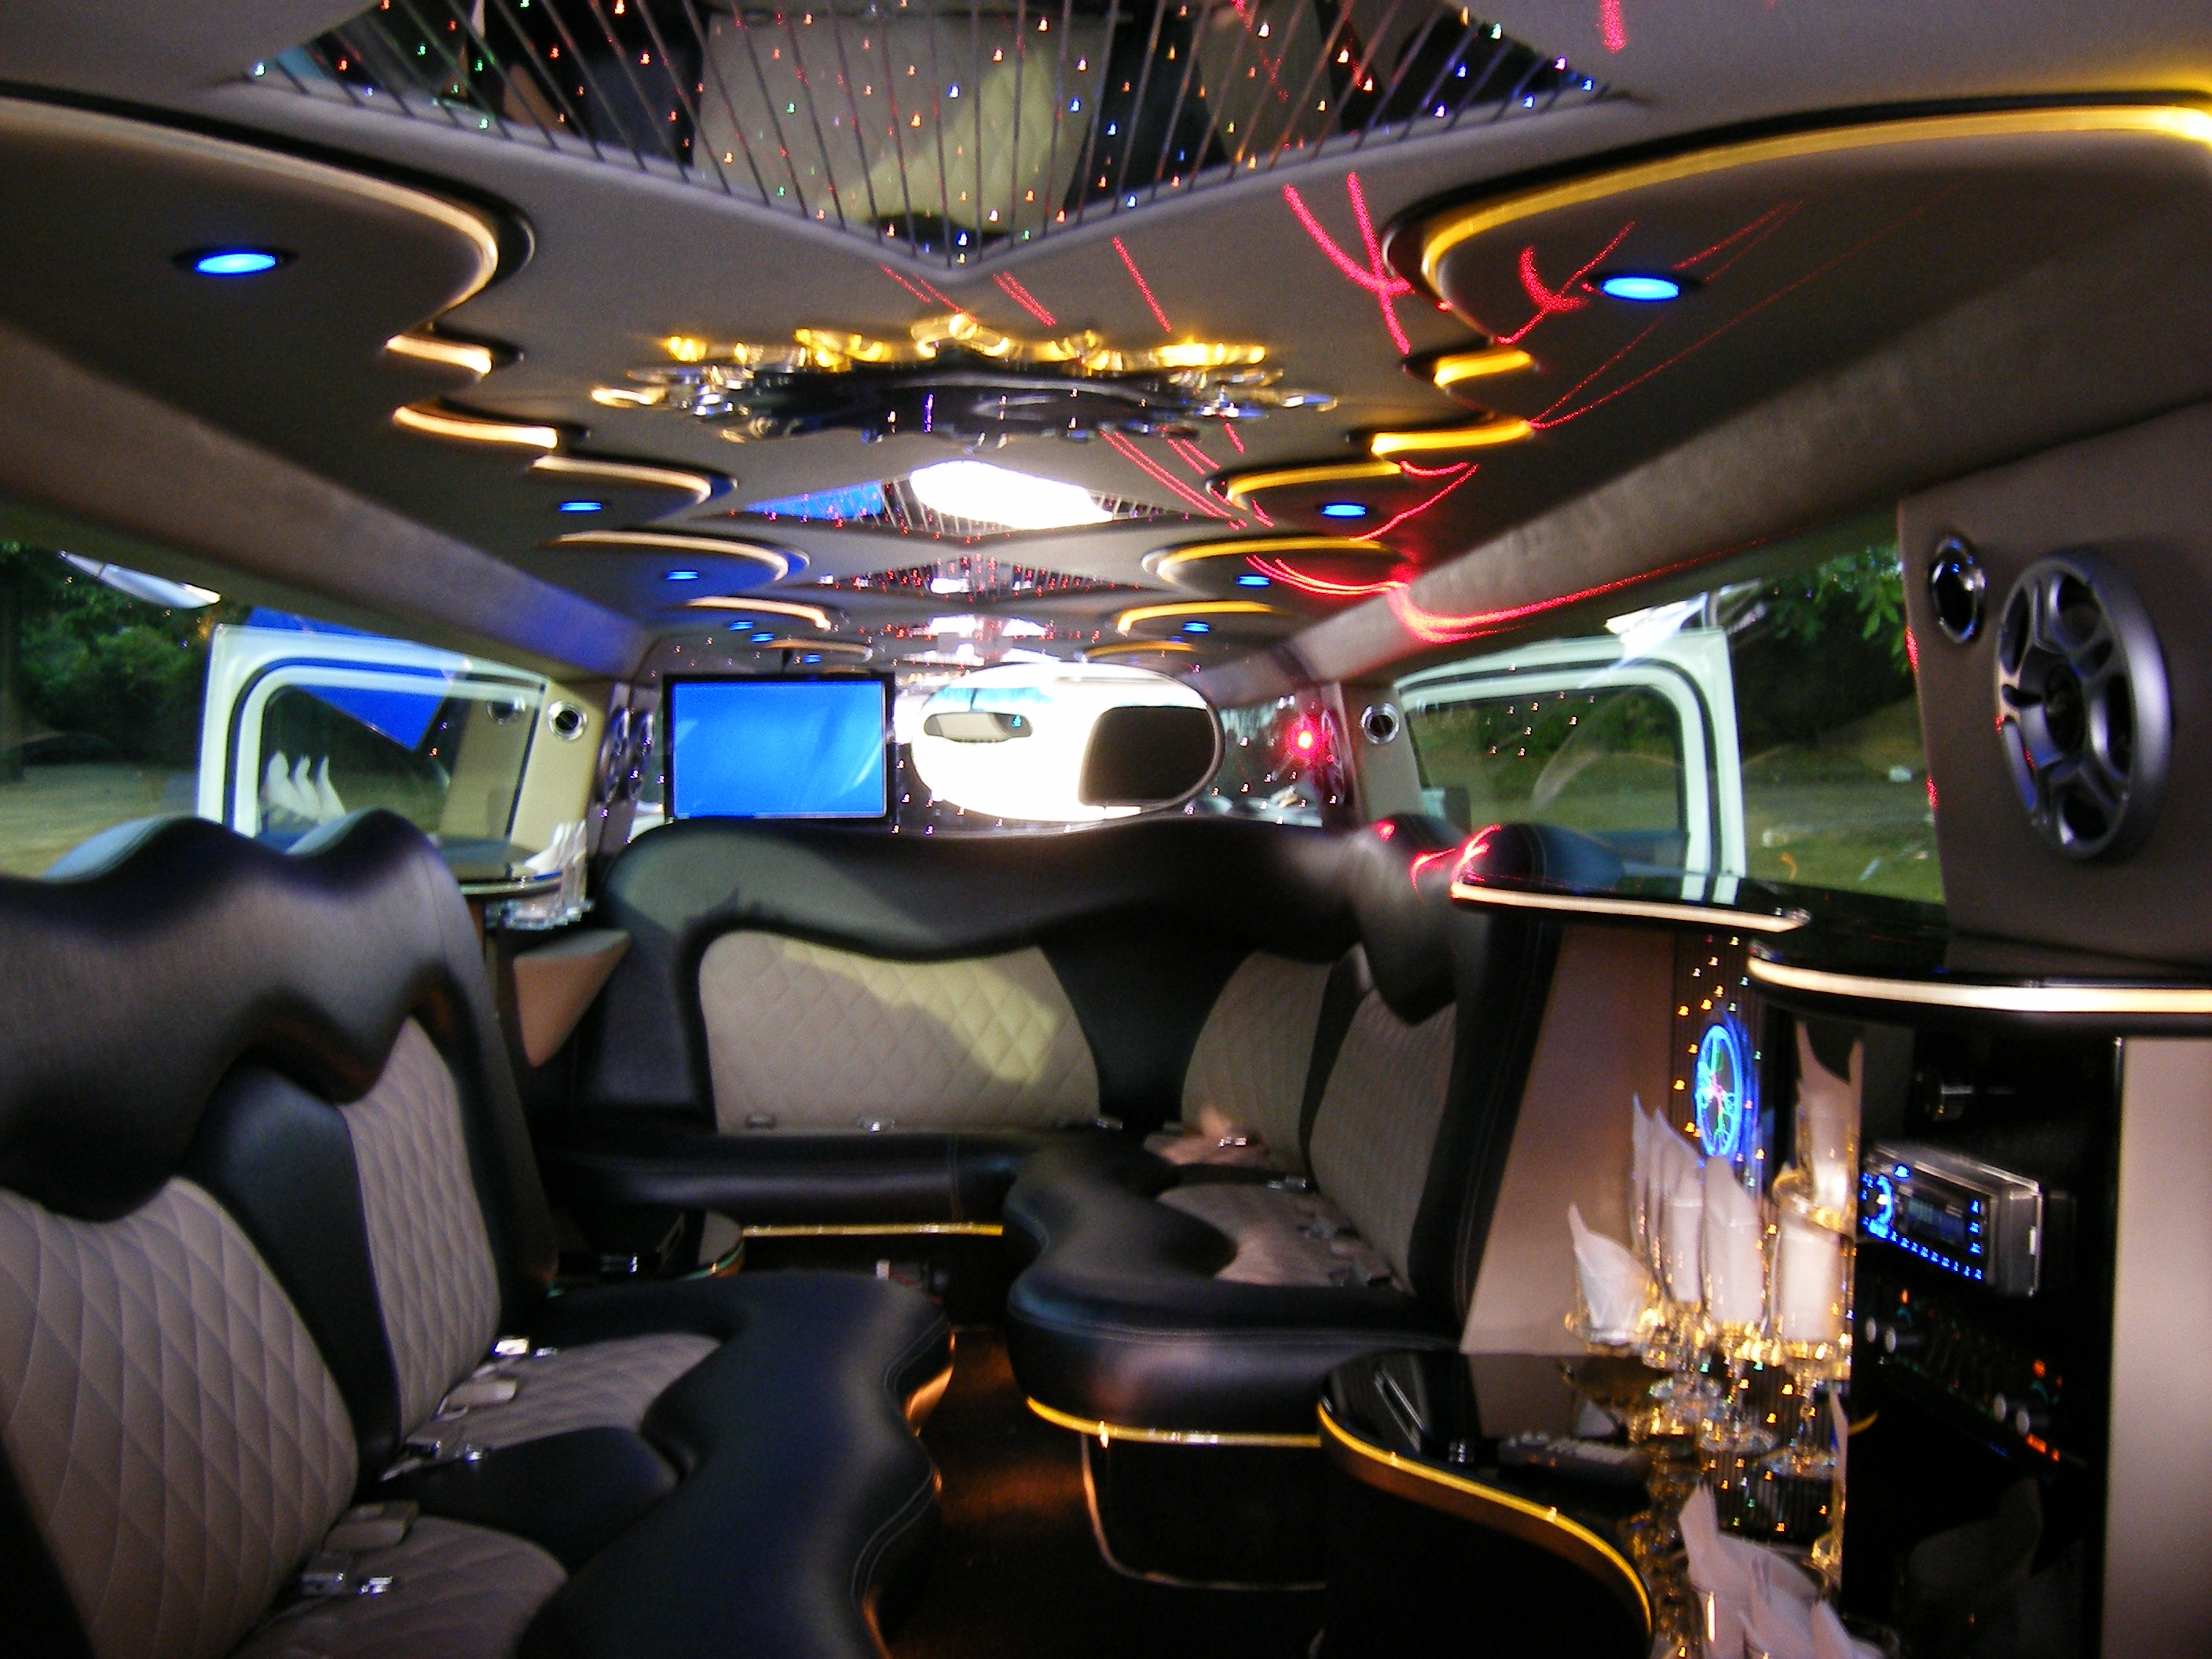 Hummer Limo Hummer H3 Limousine Hire and Hummer Limo Hire